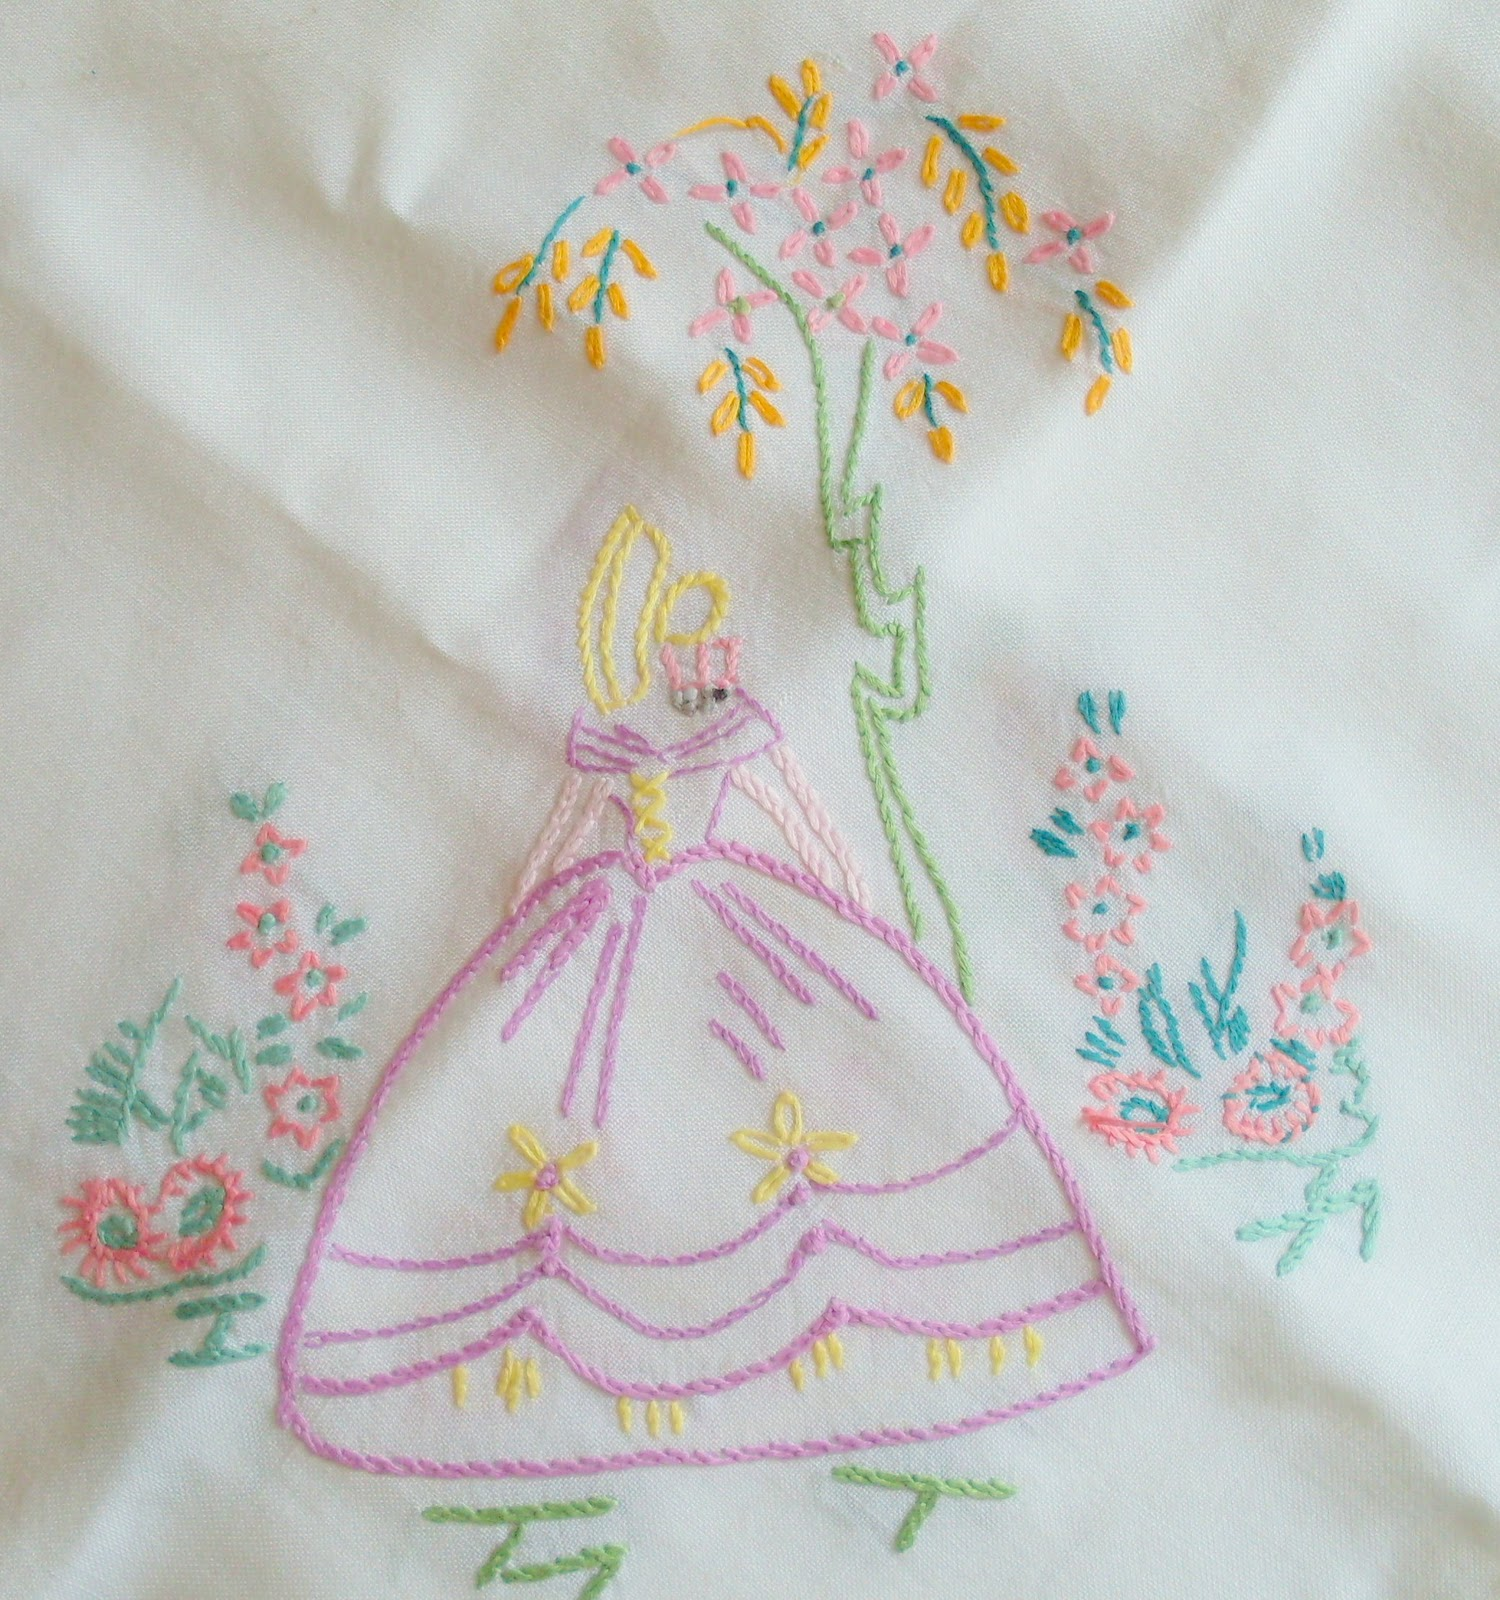 Table cover embroidery designs - Gillyflower Friday Flea Market Finds Then A Gorgeous Crinoline Lady Tablecloth With 4 Crinoline Ladies One